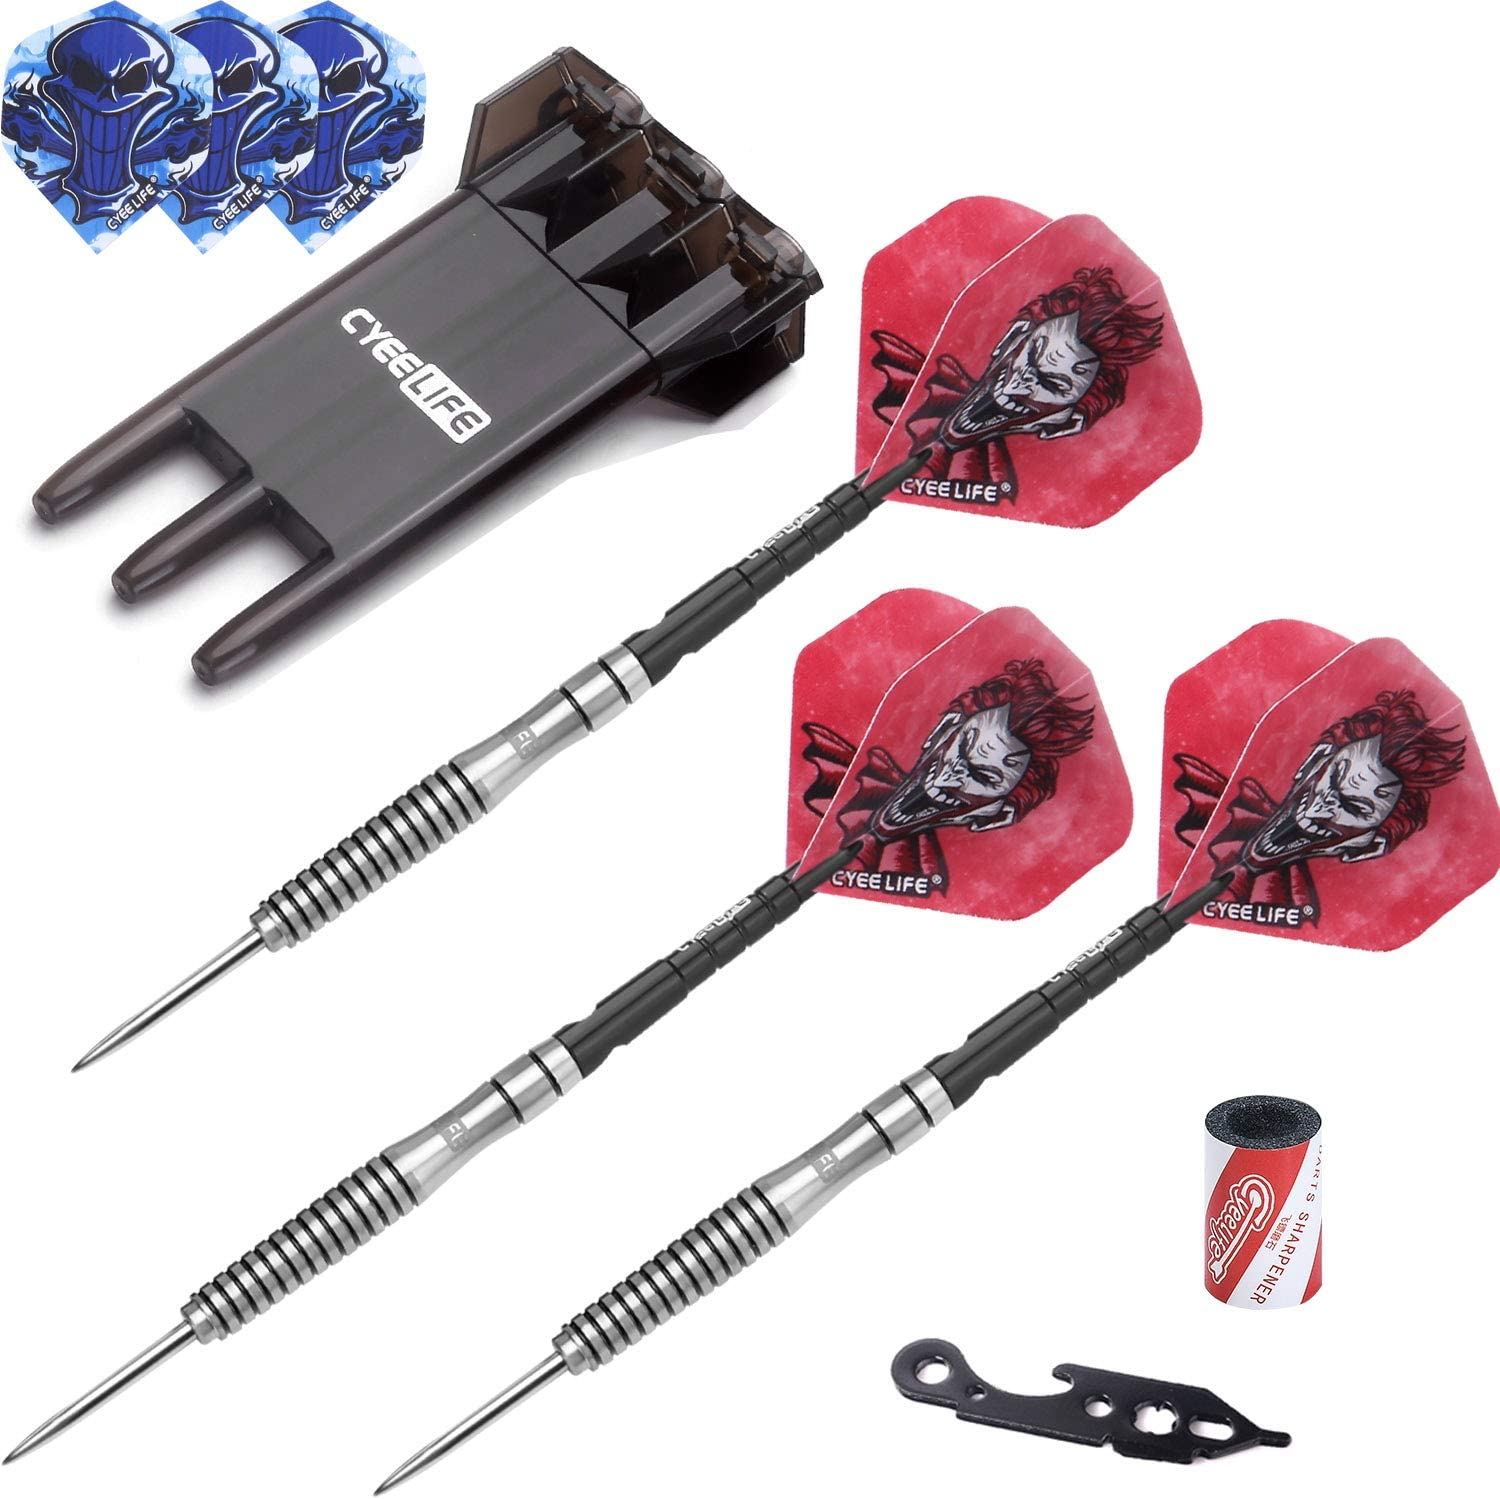 CyeeLife-90% Tungsten Steel tip Darts with Cash special price 22 New York Mall 23g Case Carrying